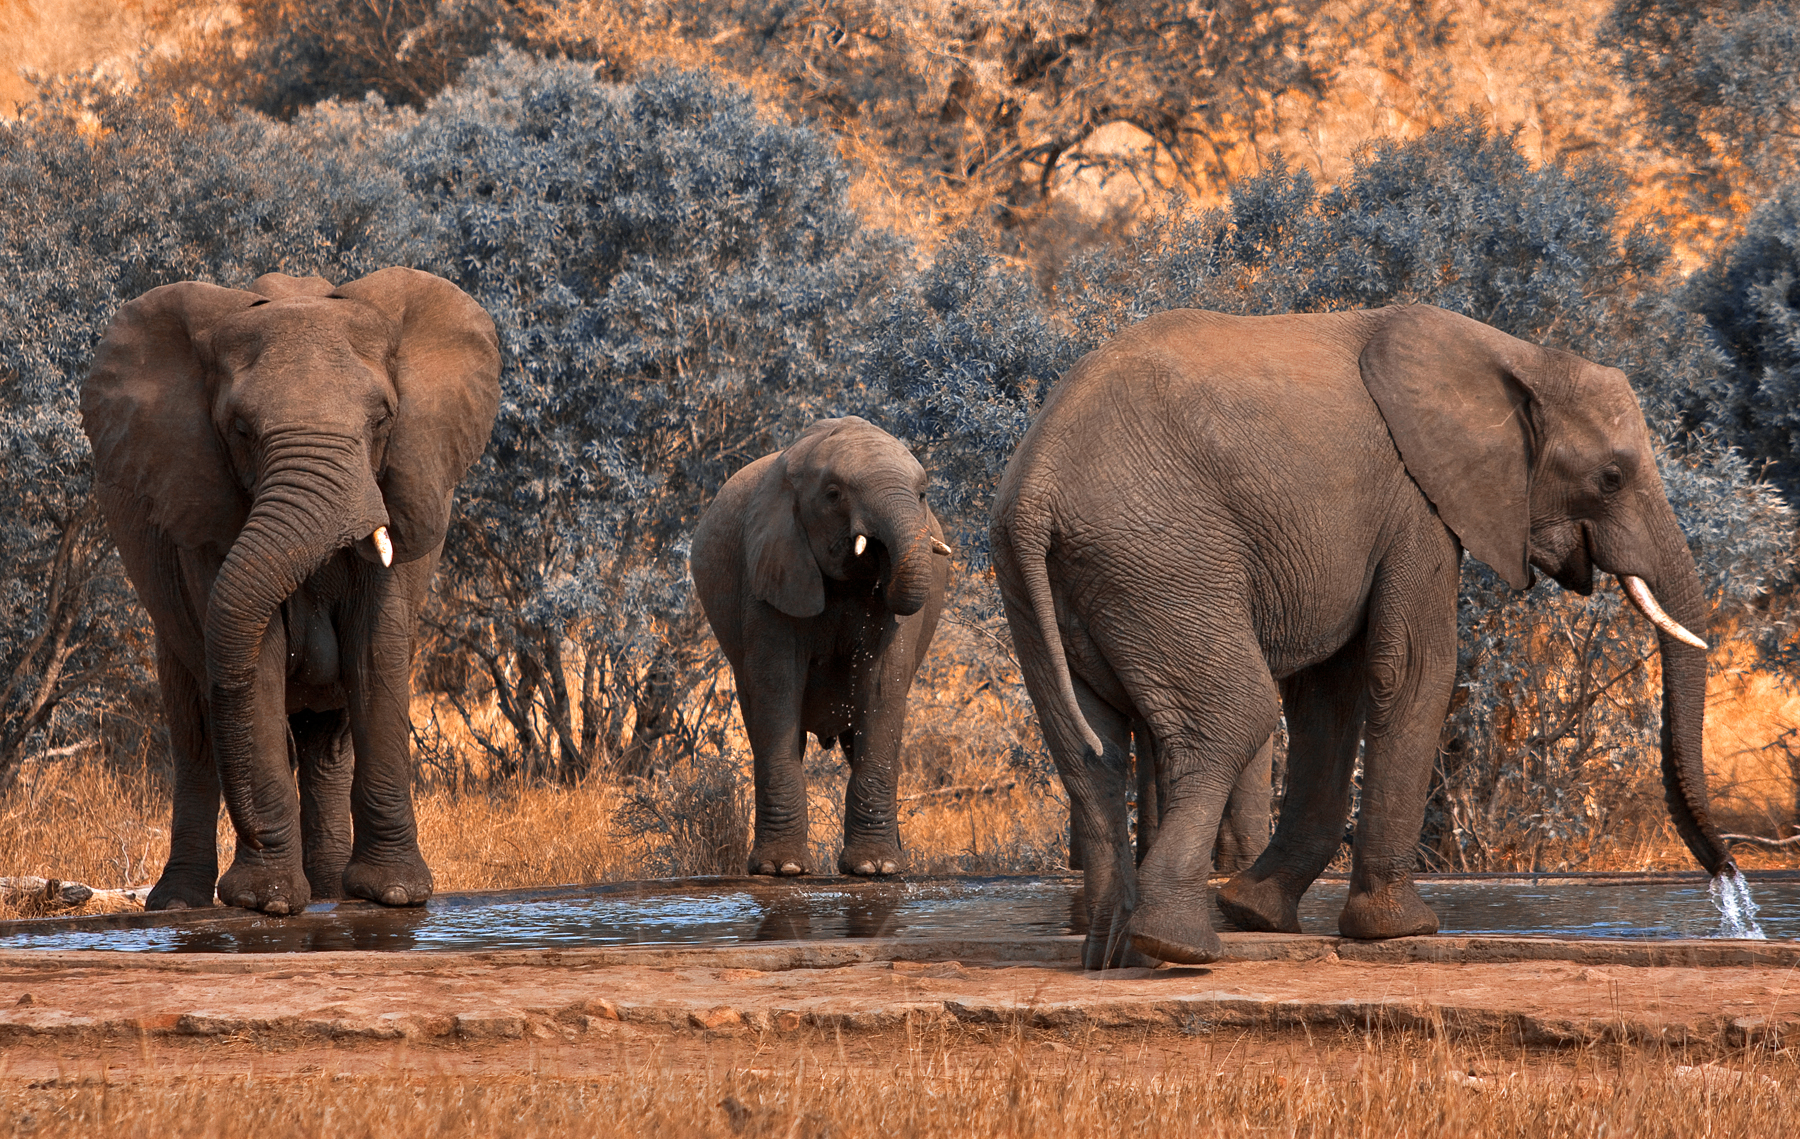 Kruger Park Elephants, Sa, Ruminants, Ruminant, Resource, HQ Photo